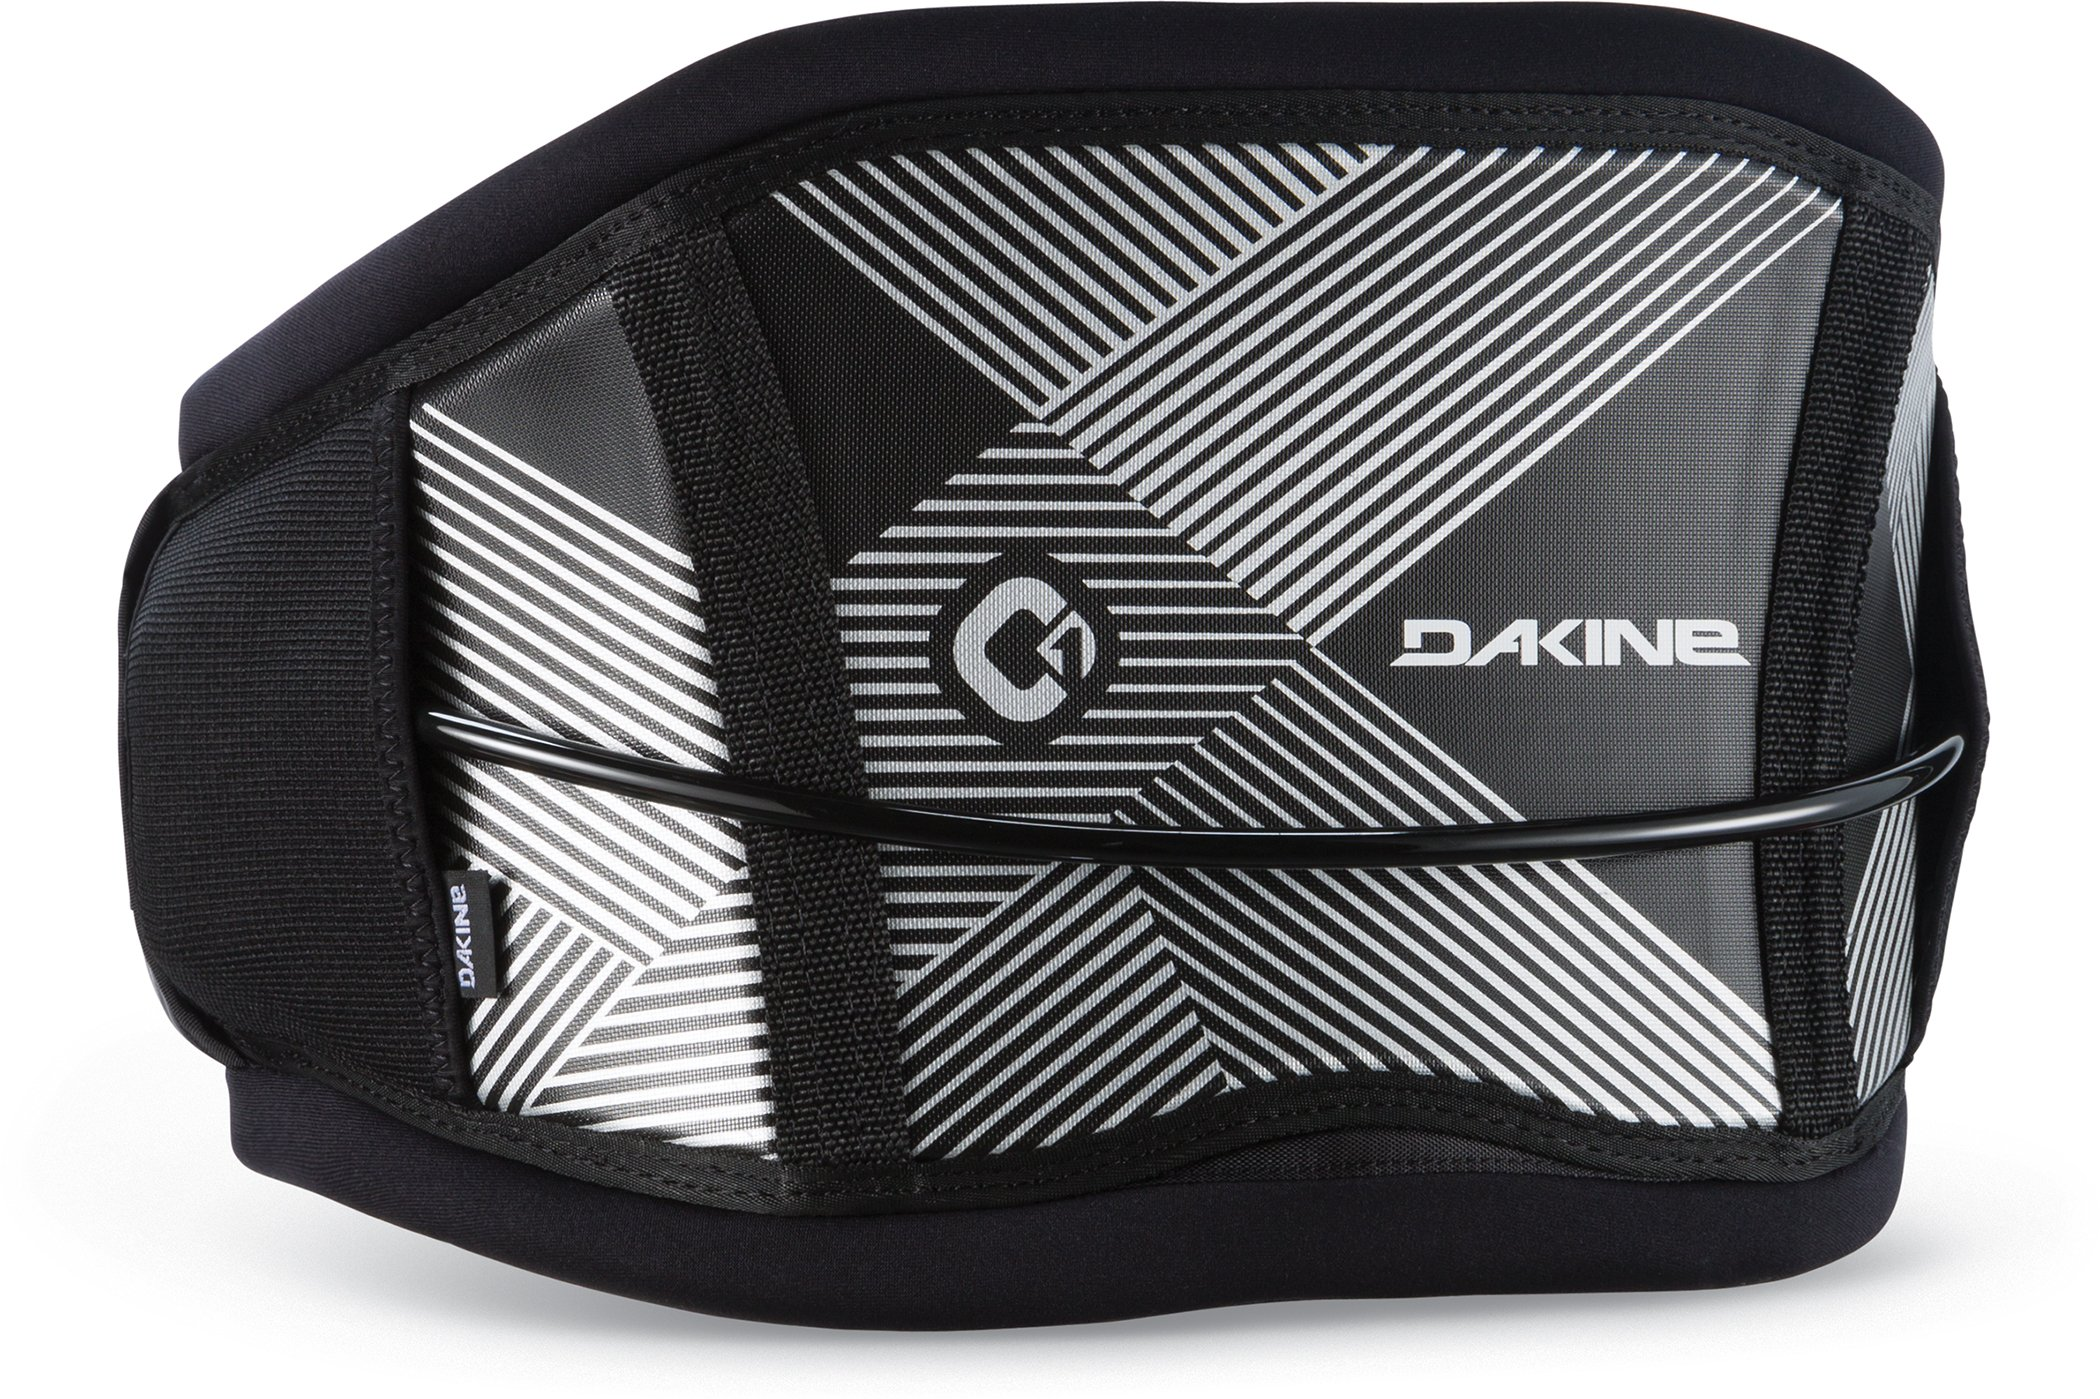 Dakine Men's C-1 Hammerhead Kite Harness, Black, XL